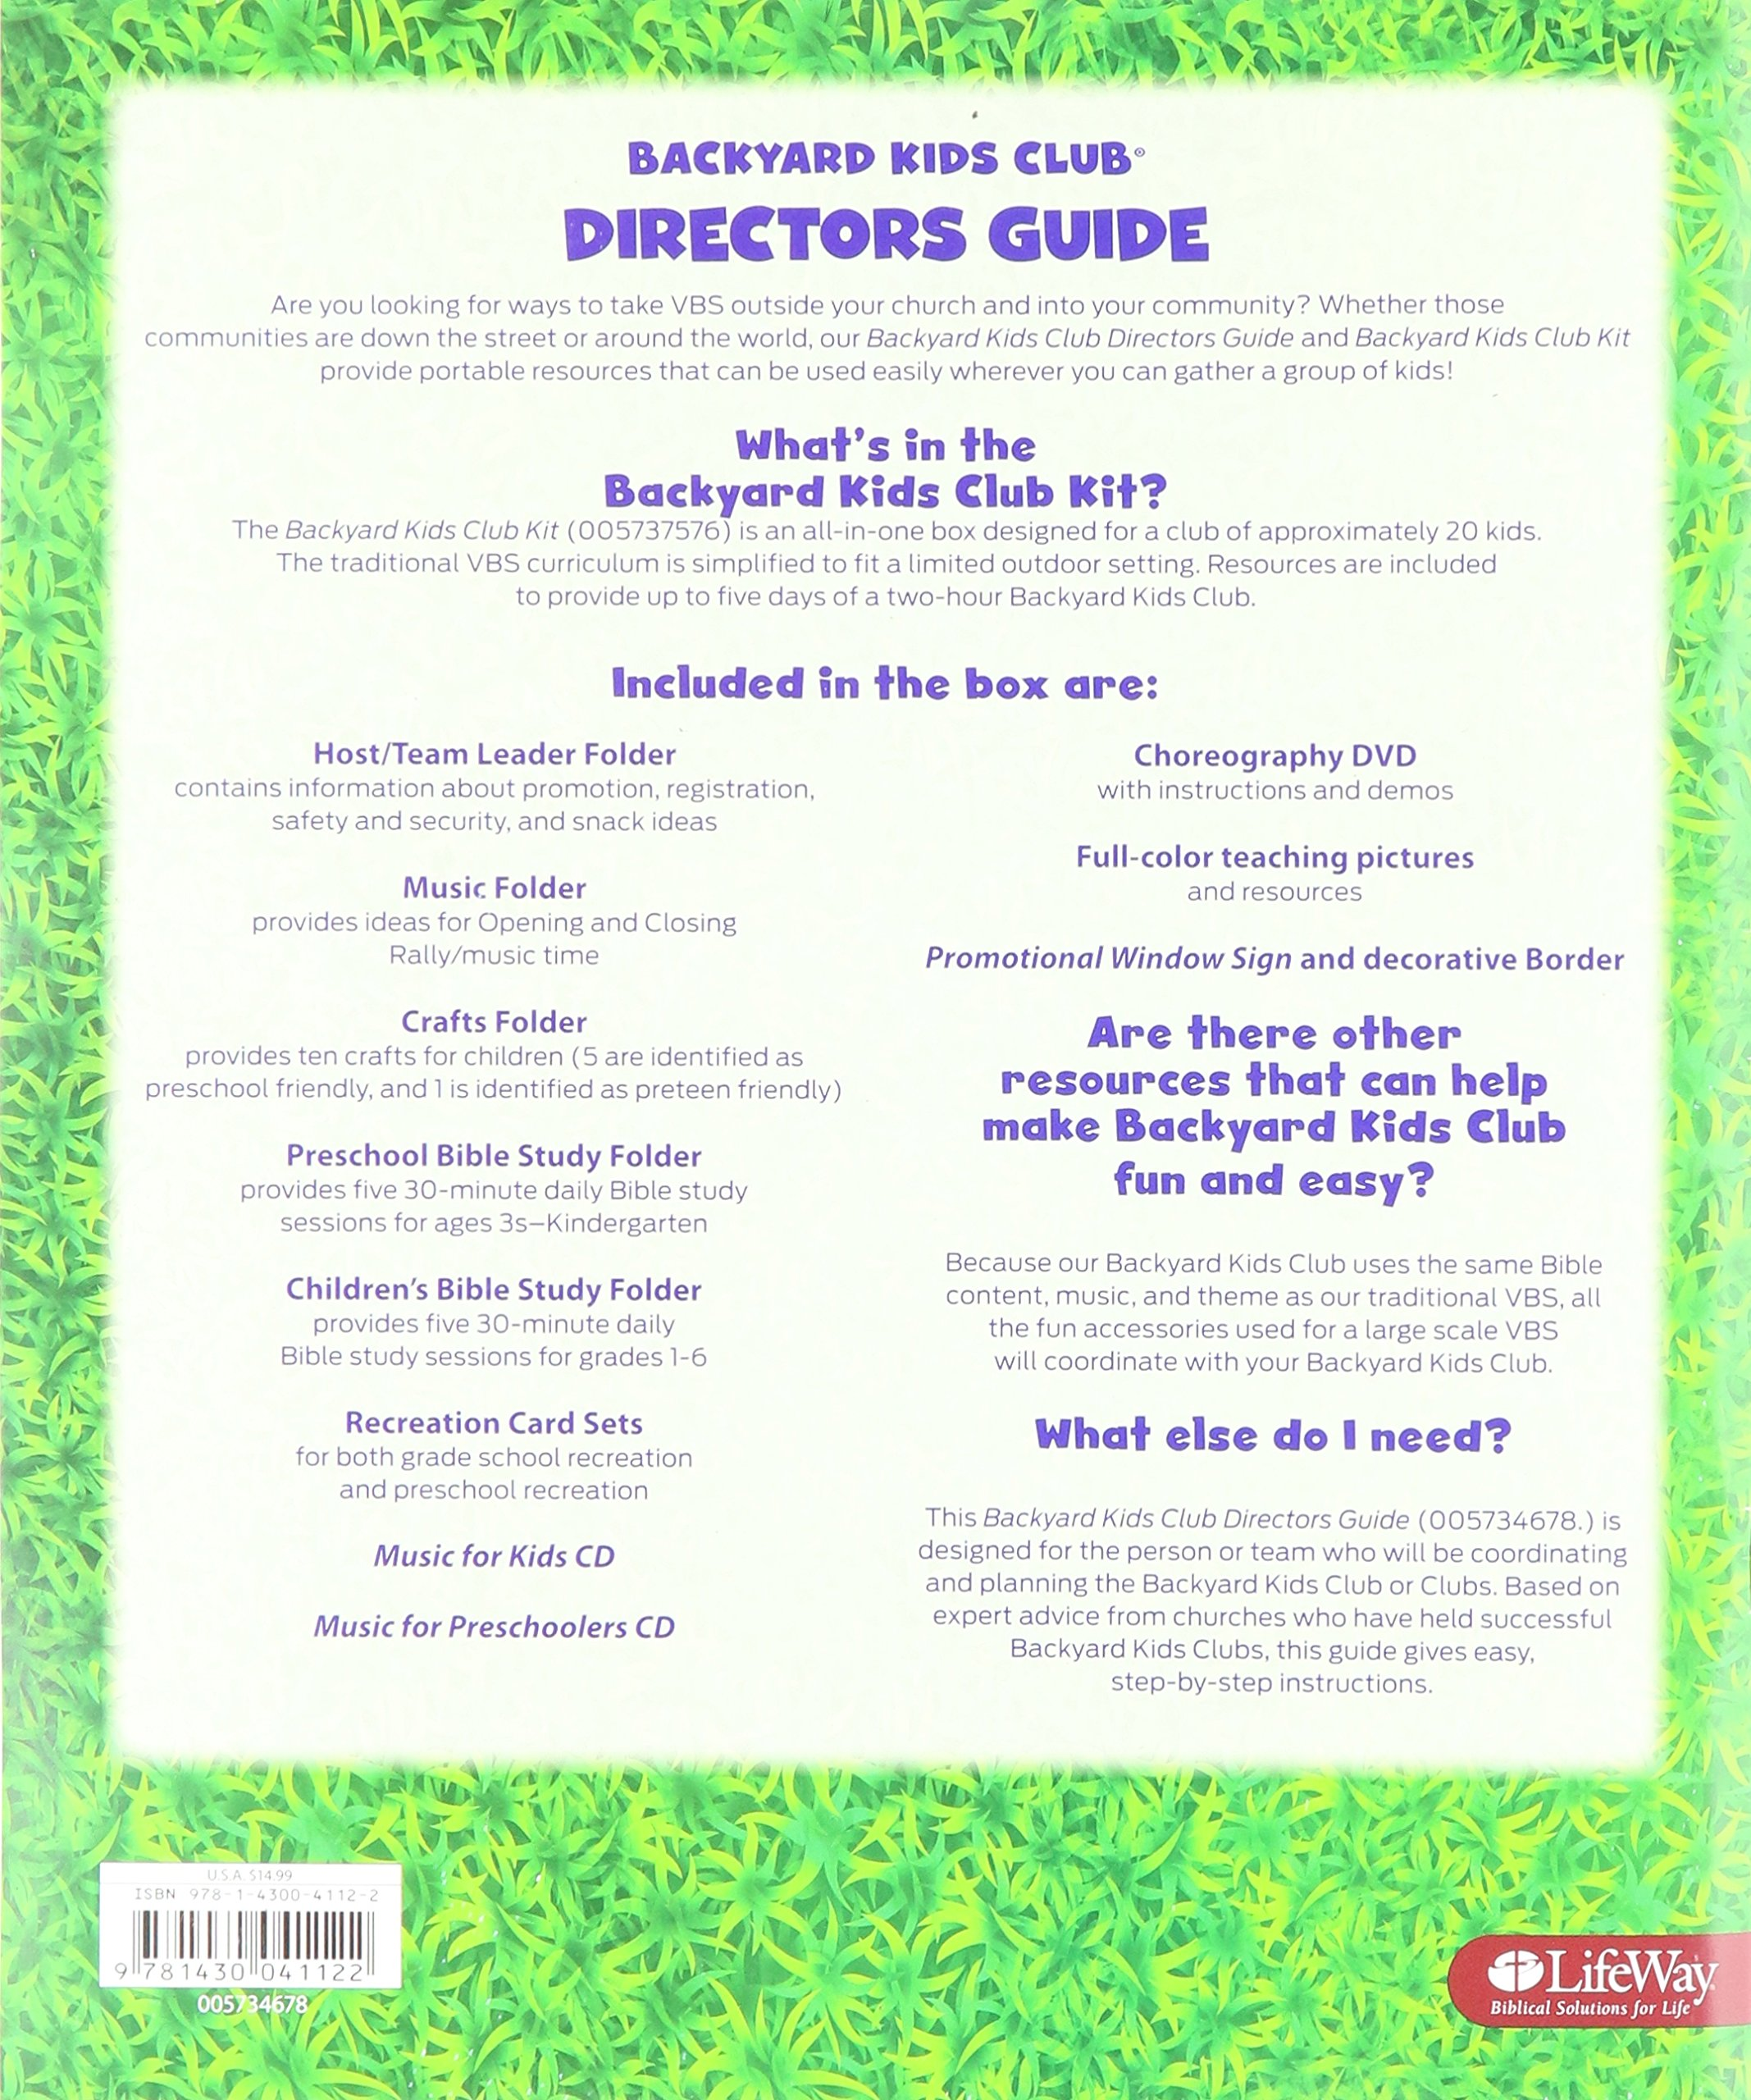 vbs 2016 submerged backyard kids club director u0027s guide lifeway